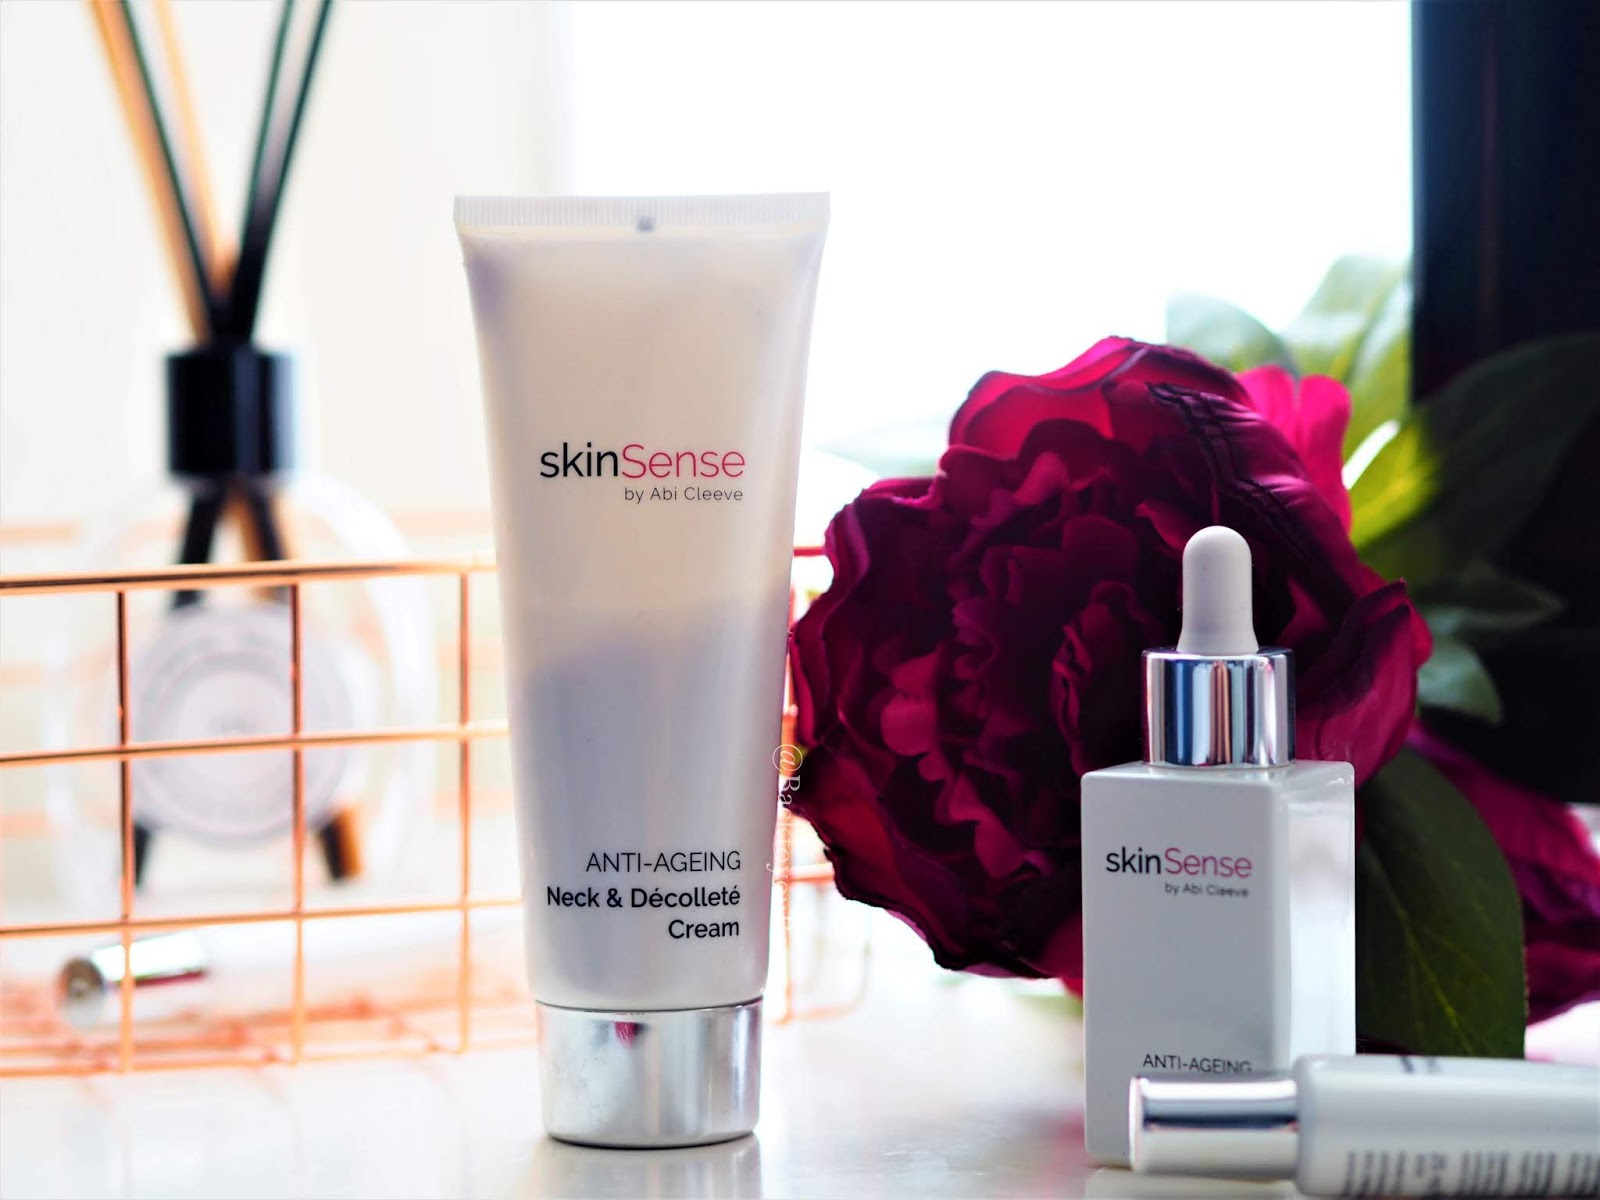 Skinsense Neck & Decollete Cream